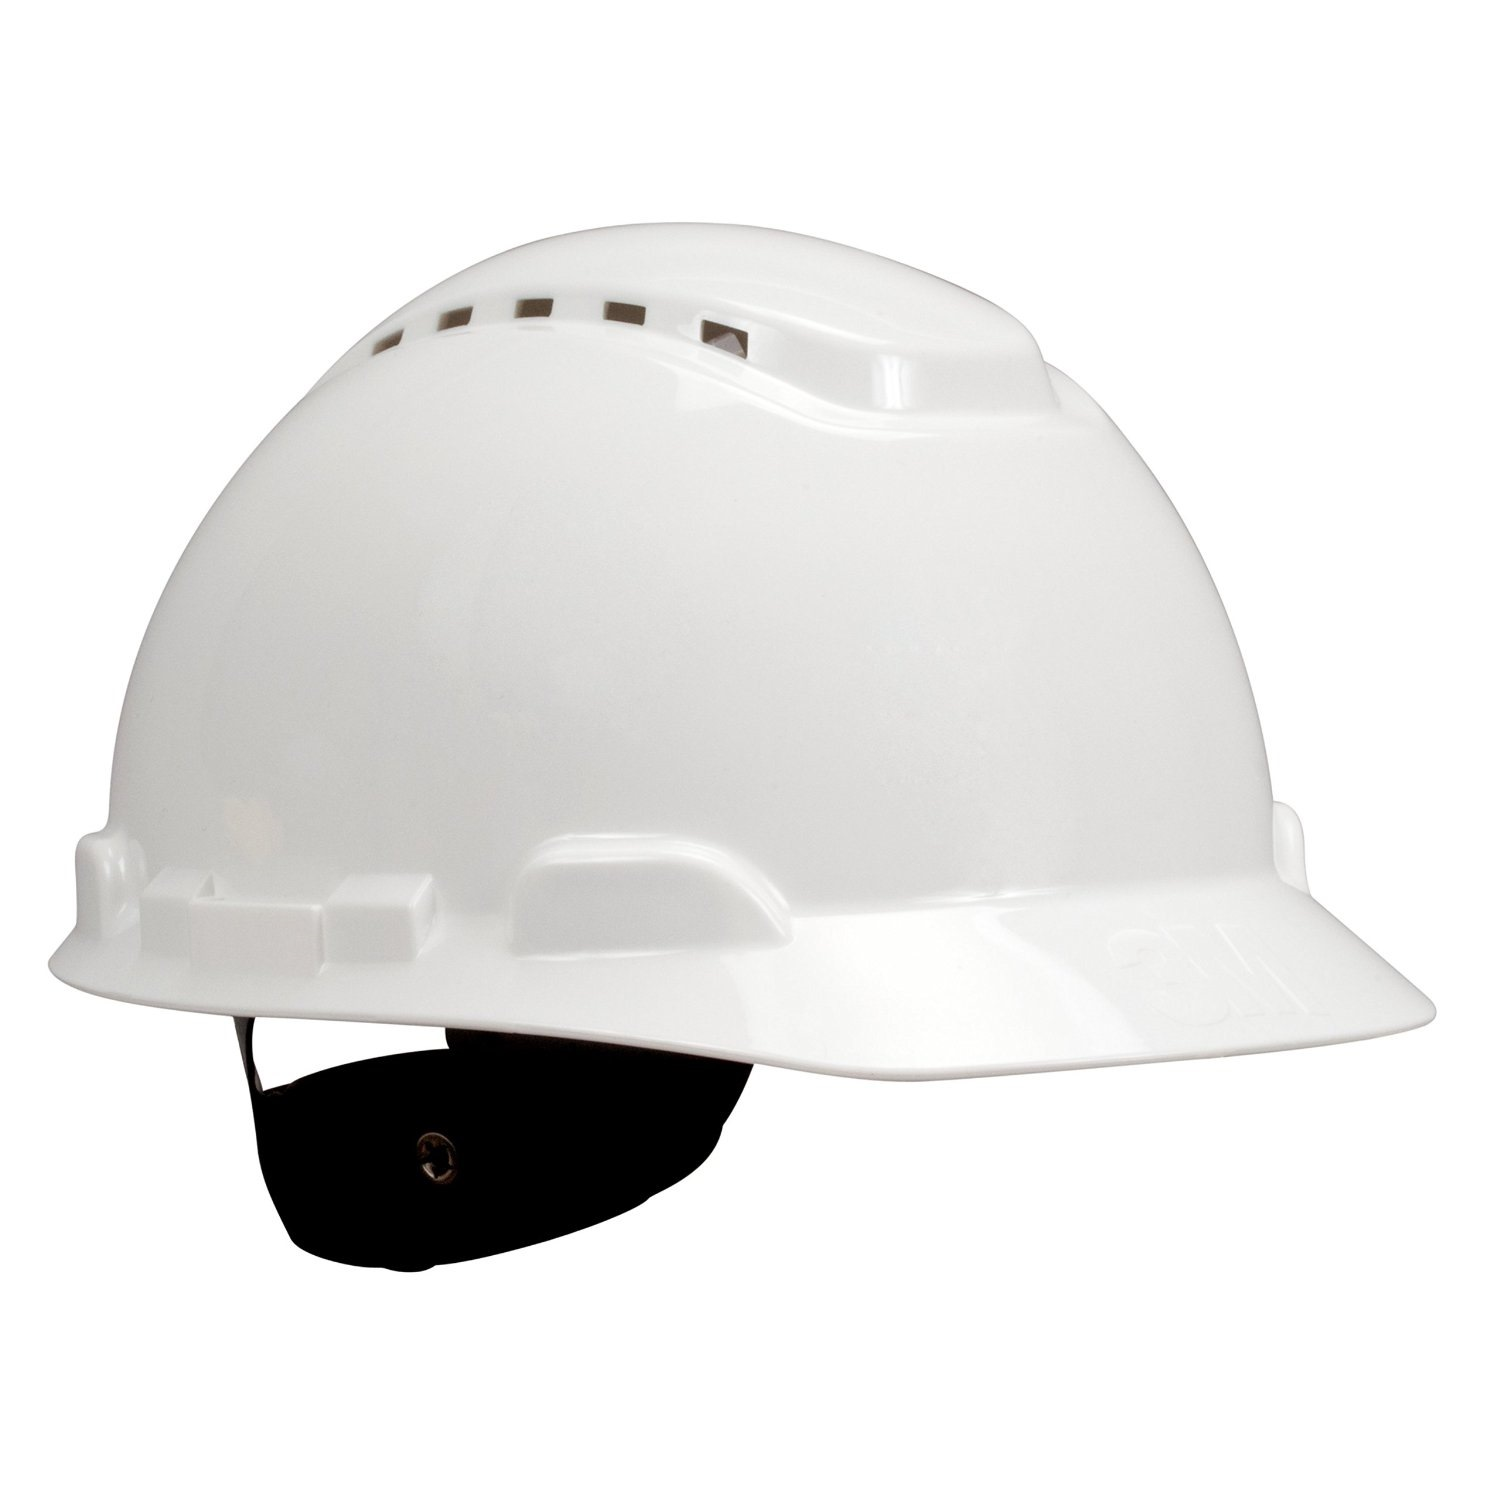 3m H-701r Helmet White 4 Pt Ratchet With Chin Strap